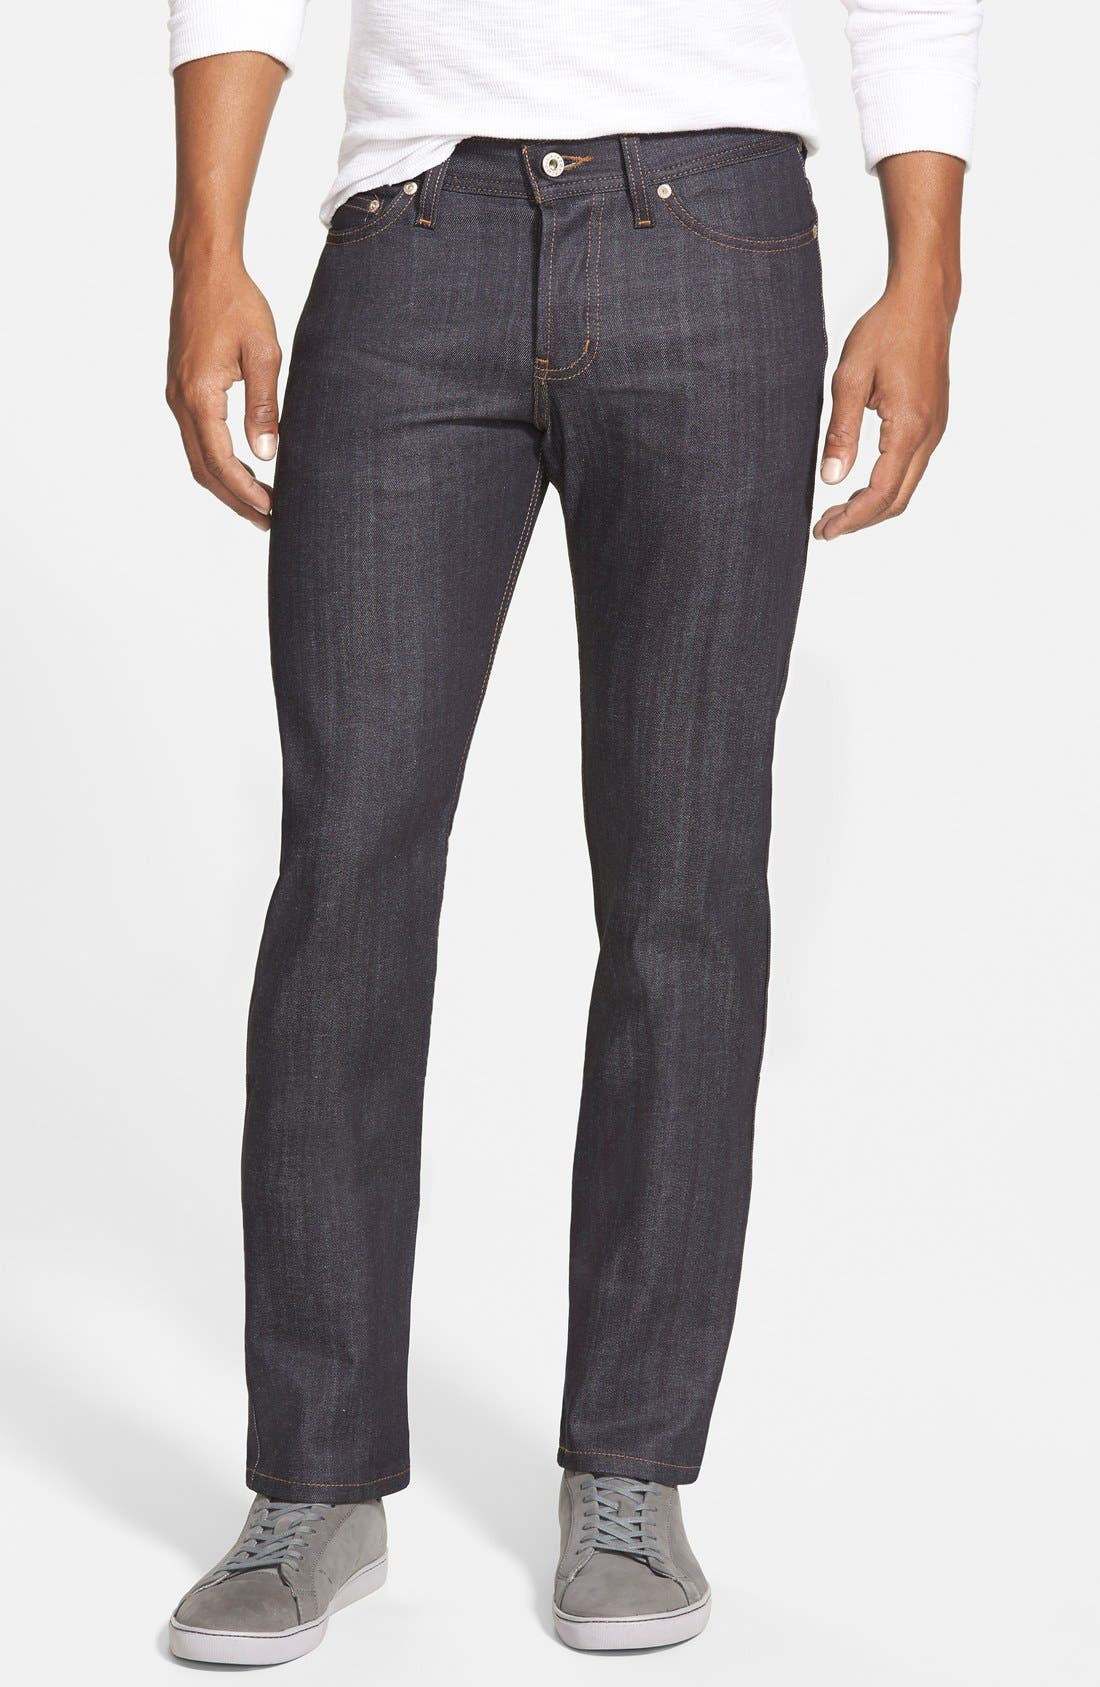 'Weird Guy' Slim Fit Jeans,                             Main thumbnail 1, color,                             401